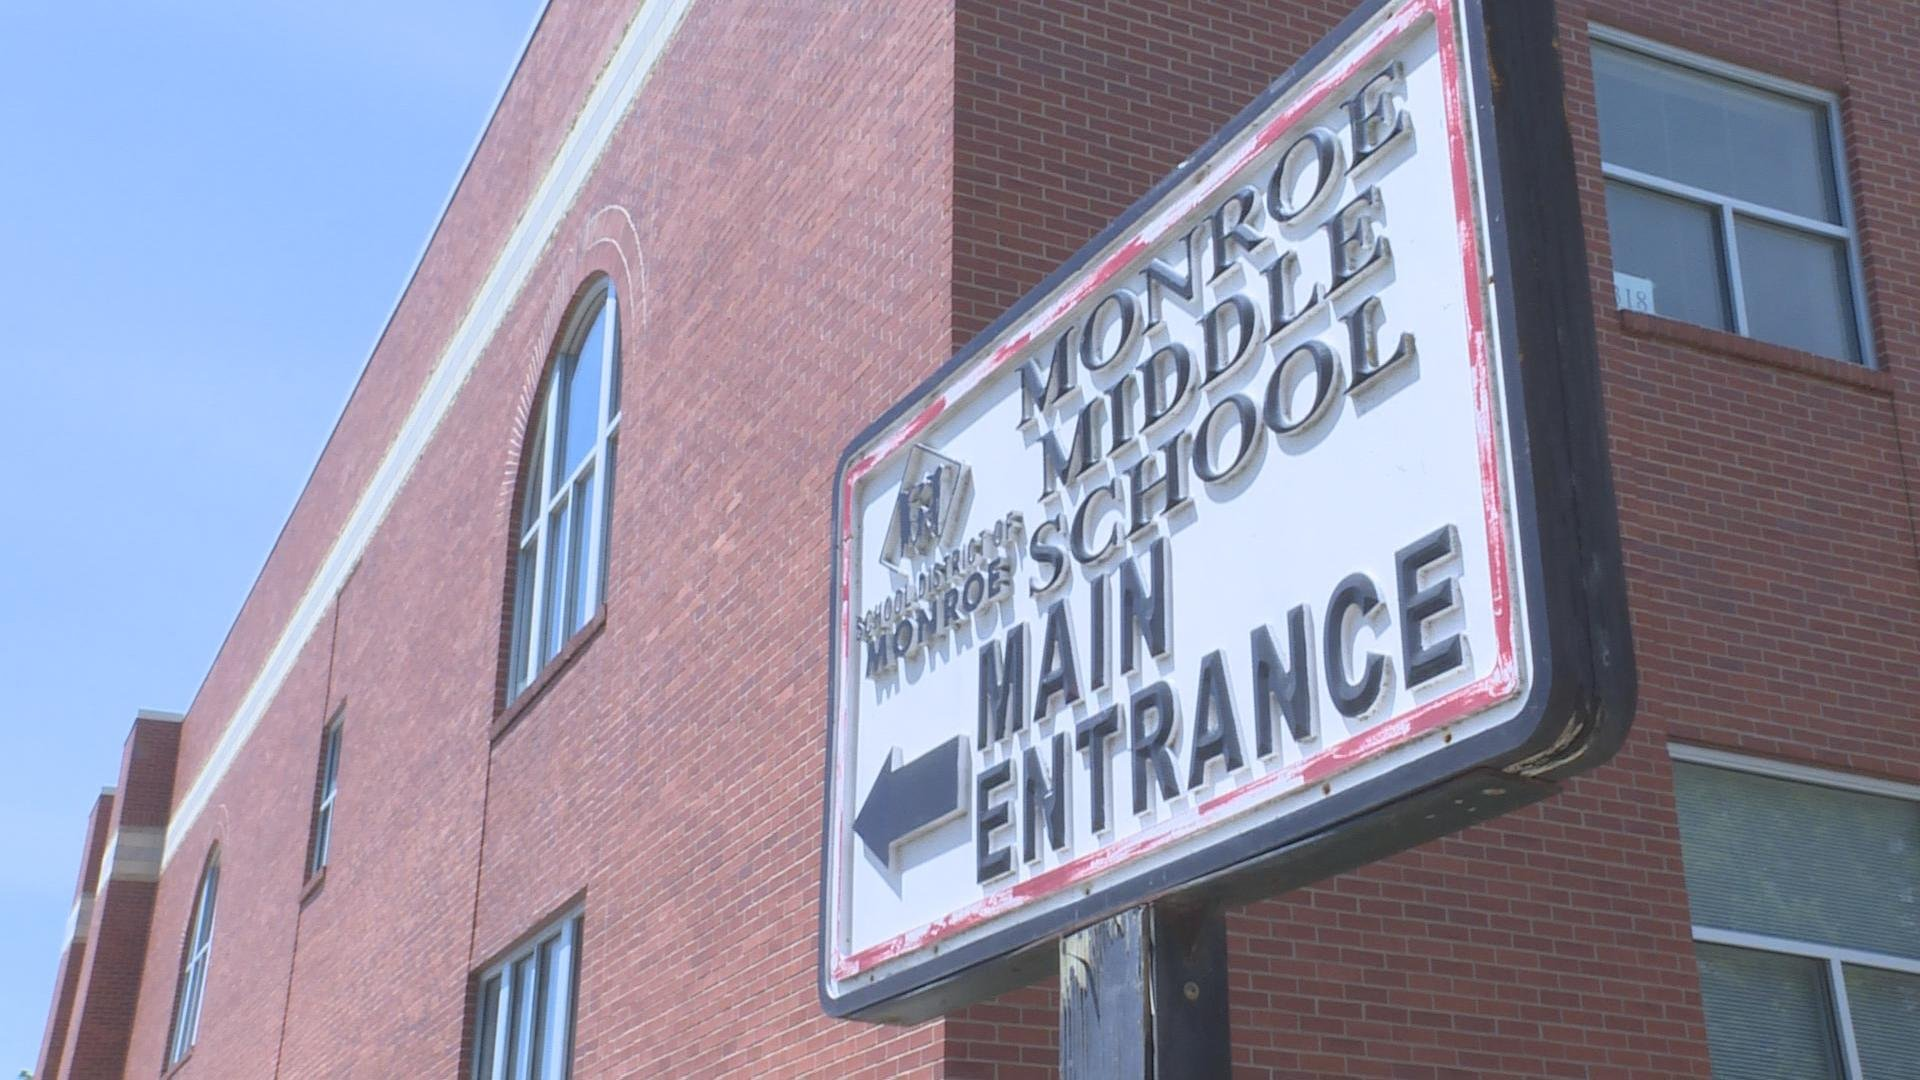 Monroe District Administrator Rick Waske plans to use a portion of the more than $102,000 awarded to his district to have shatter-resistant film installed on entry doors.